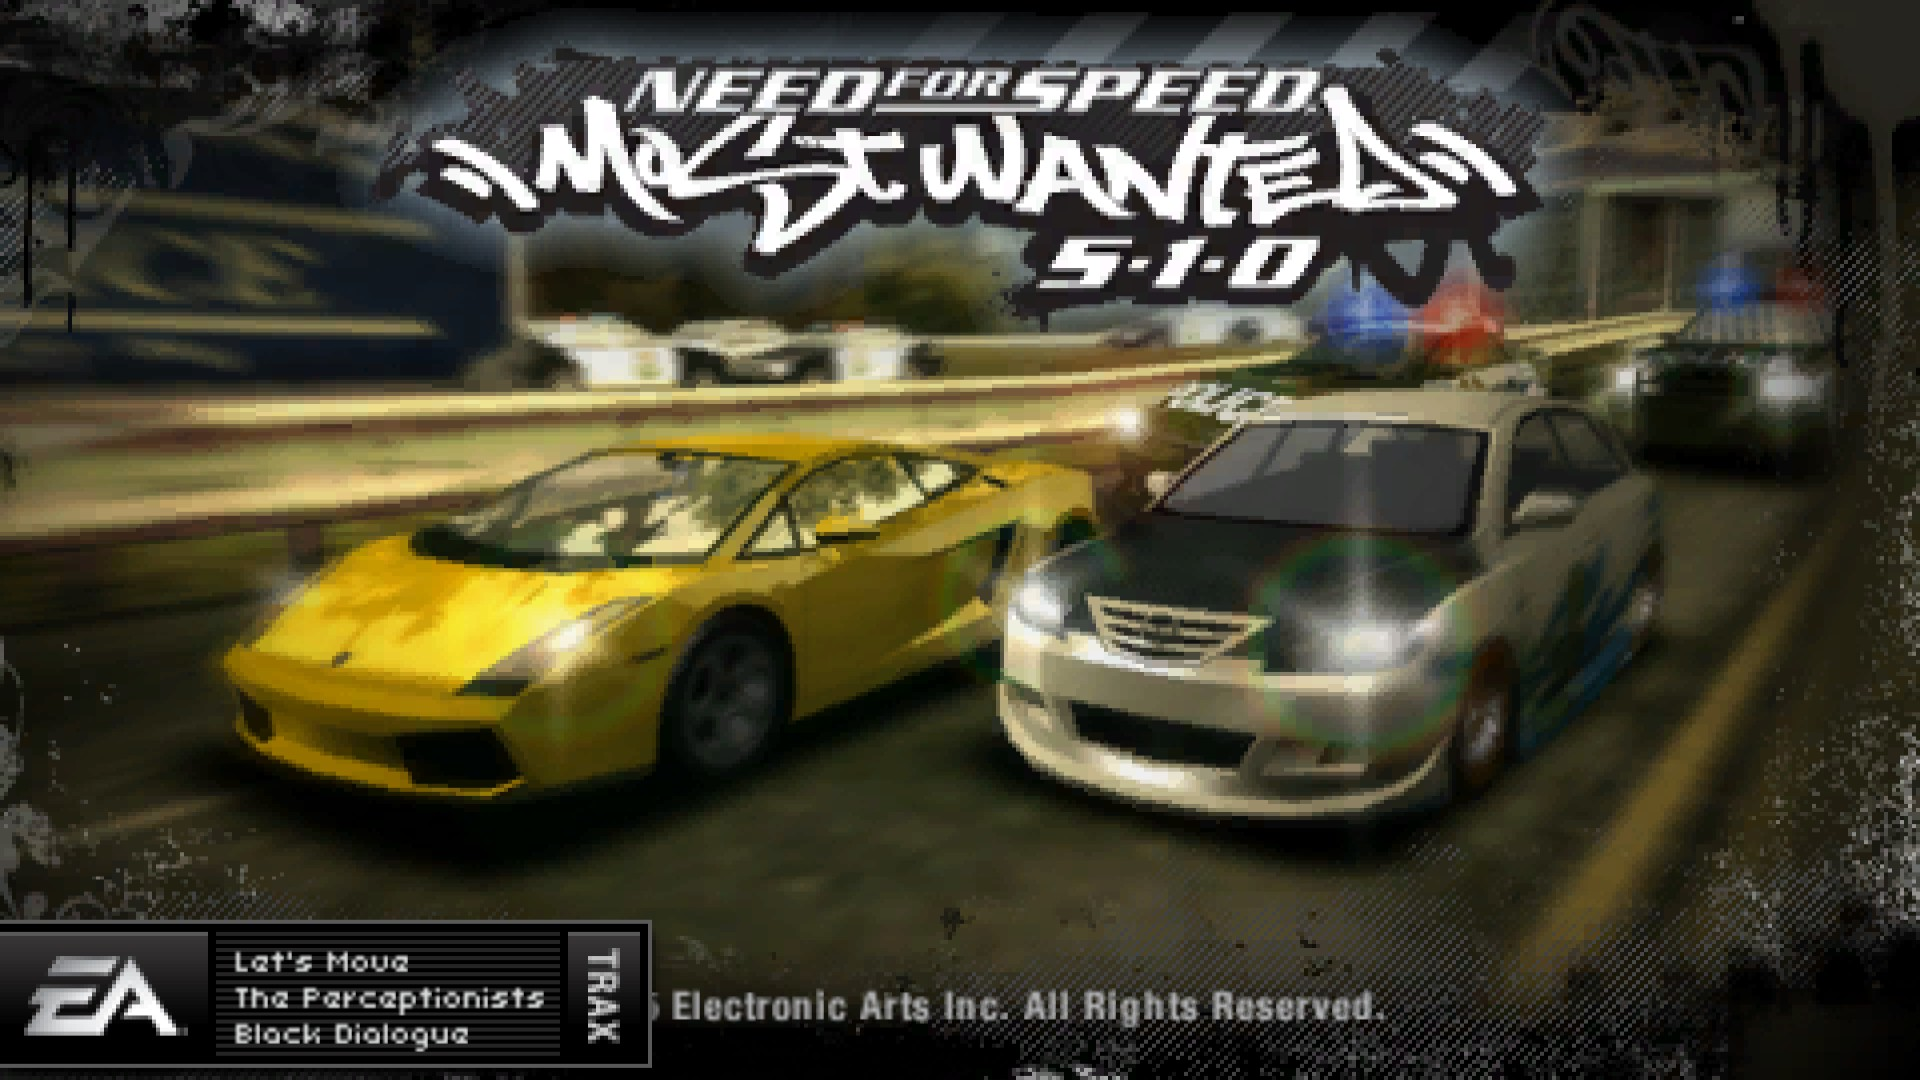 Need for Speed - Most Wanted 5-1-0 (USA) ISO